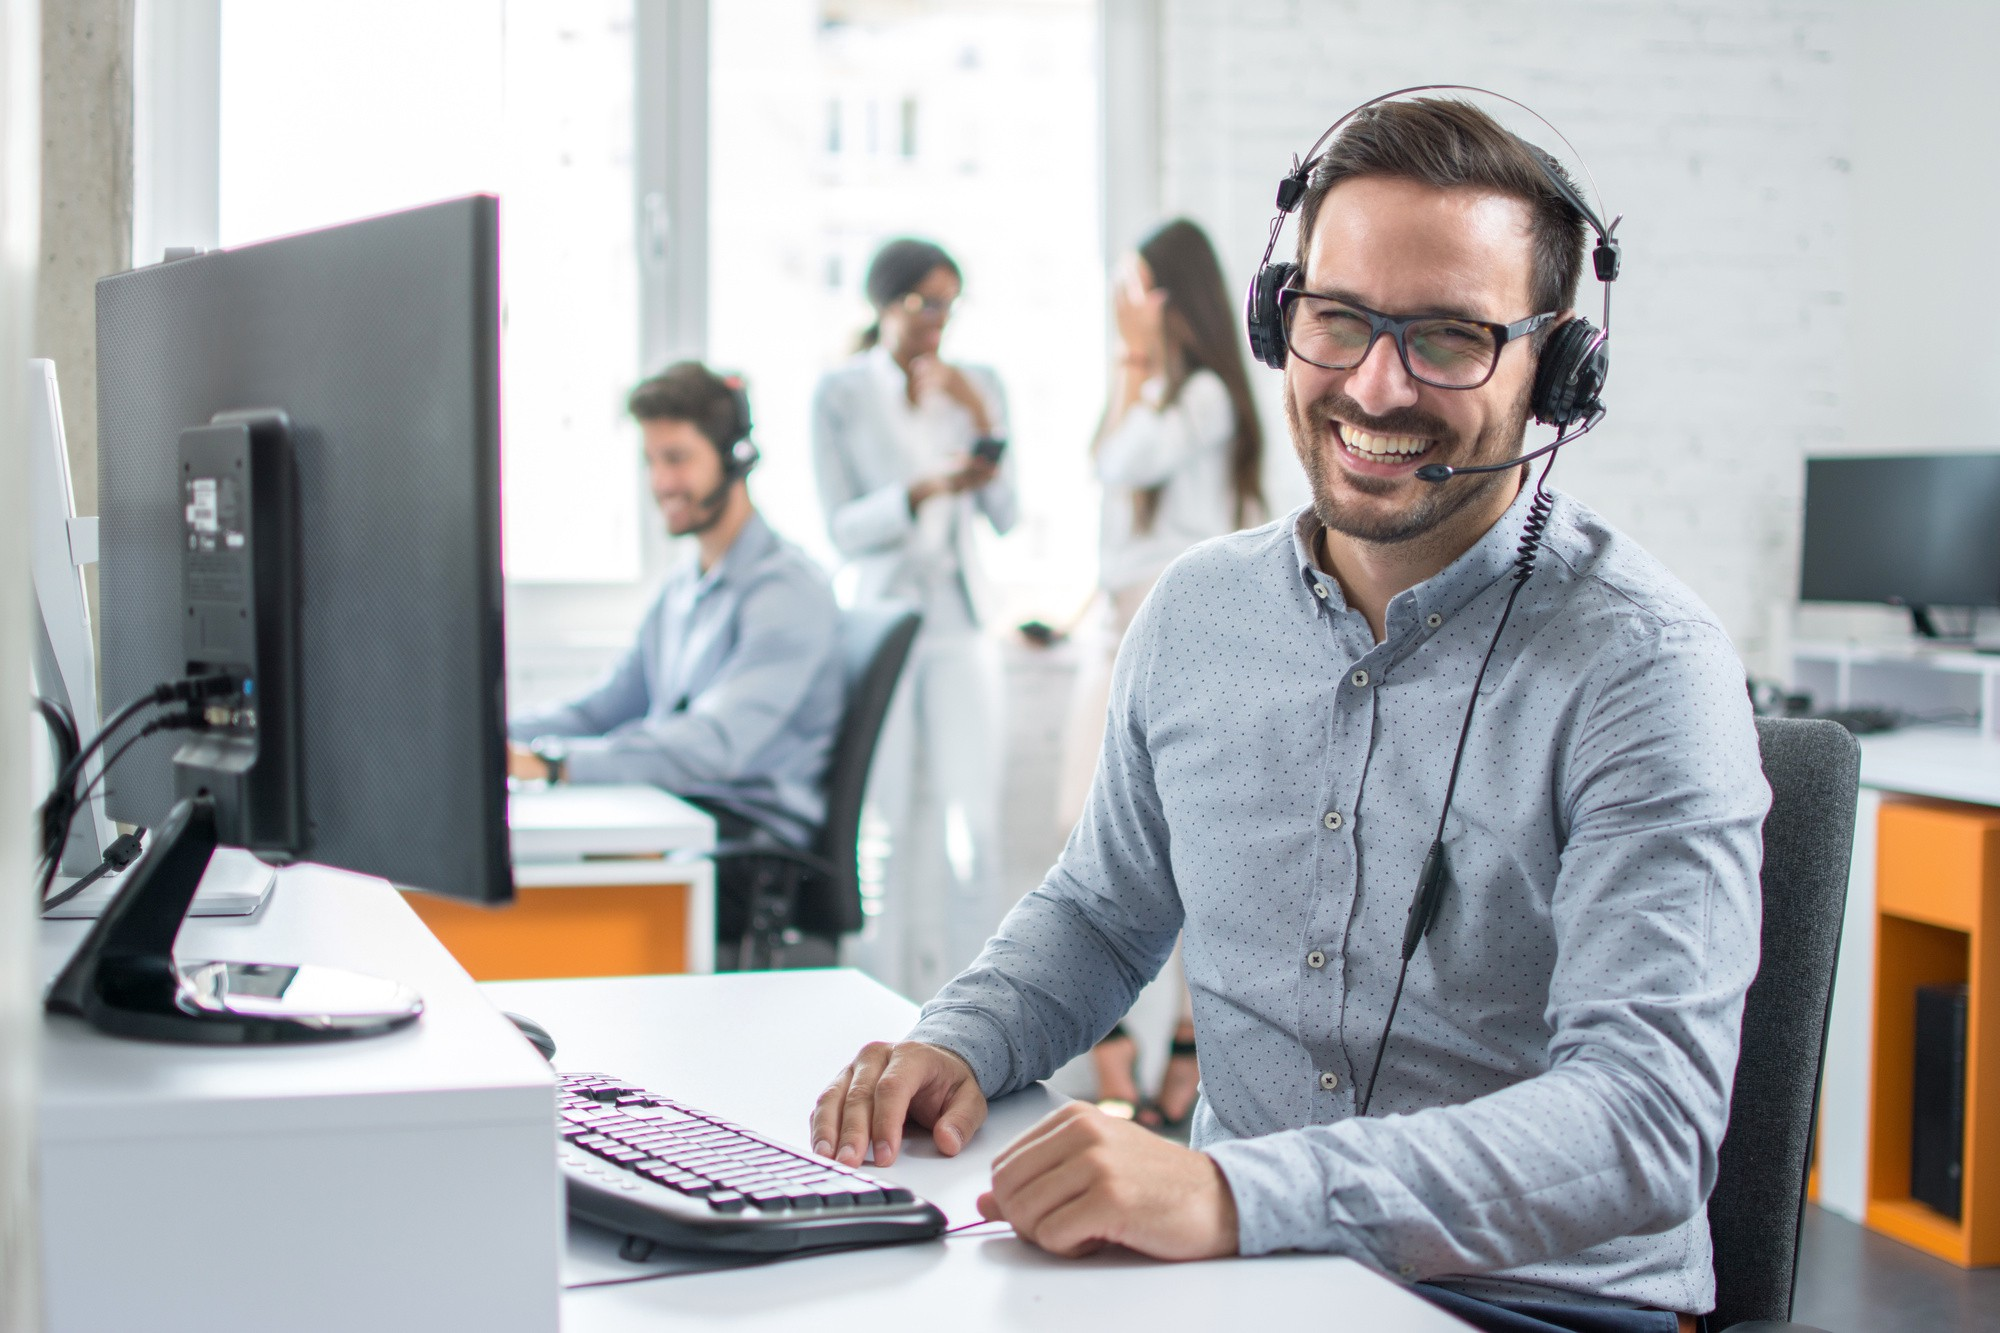 Call Center Technologies Better Technology For Better Call Centers Customer Experience By On Second Thought Medium